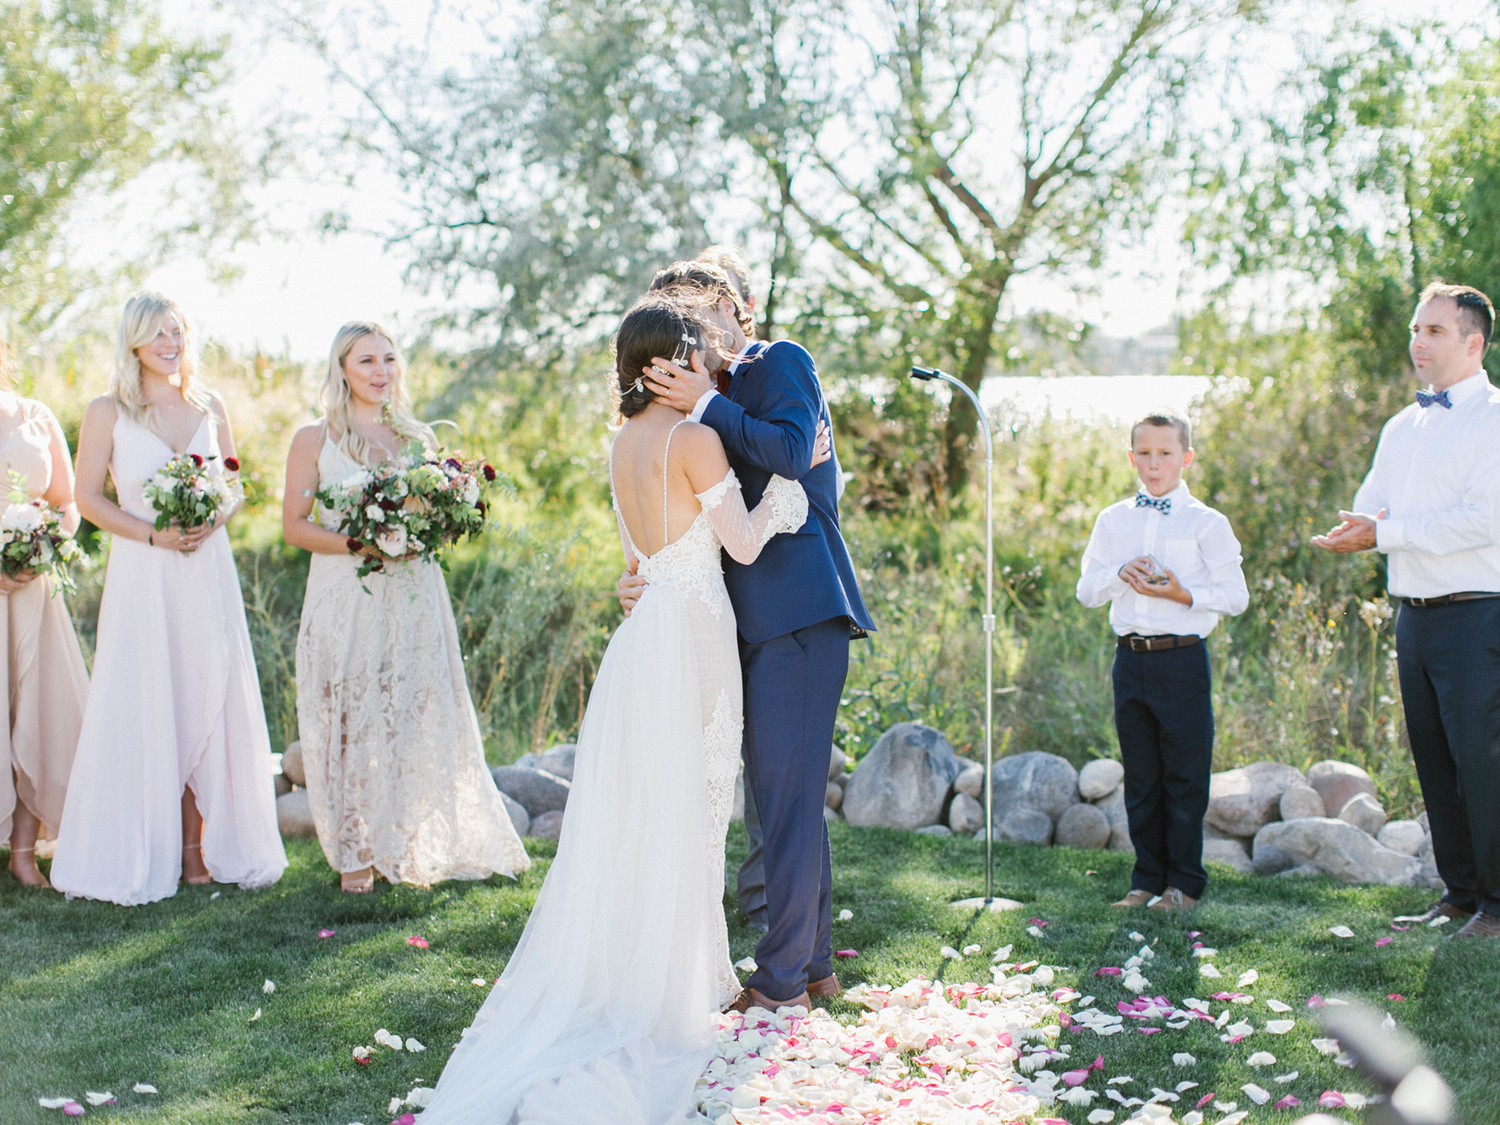 Romantic Backyard Wedding - Maria Lamb